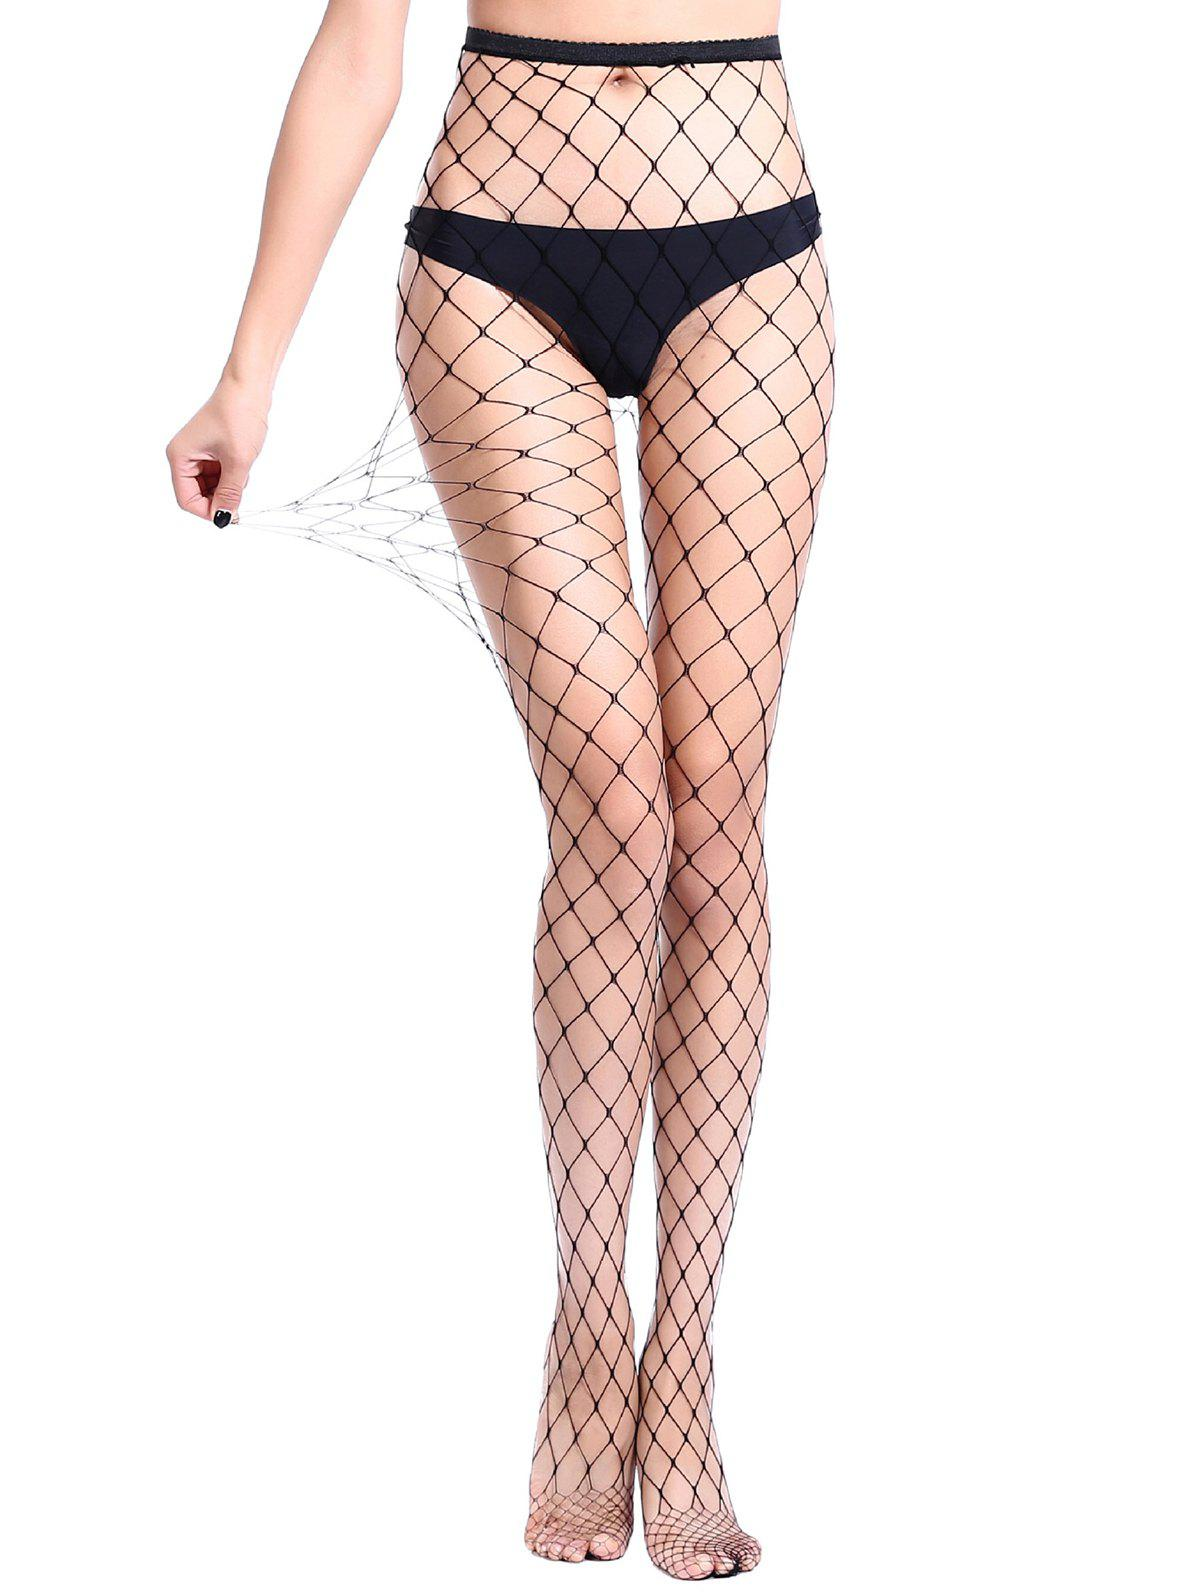 Hollow Mesh Fishing Net Pantyhose - BLACK OVERSIZE